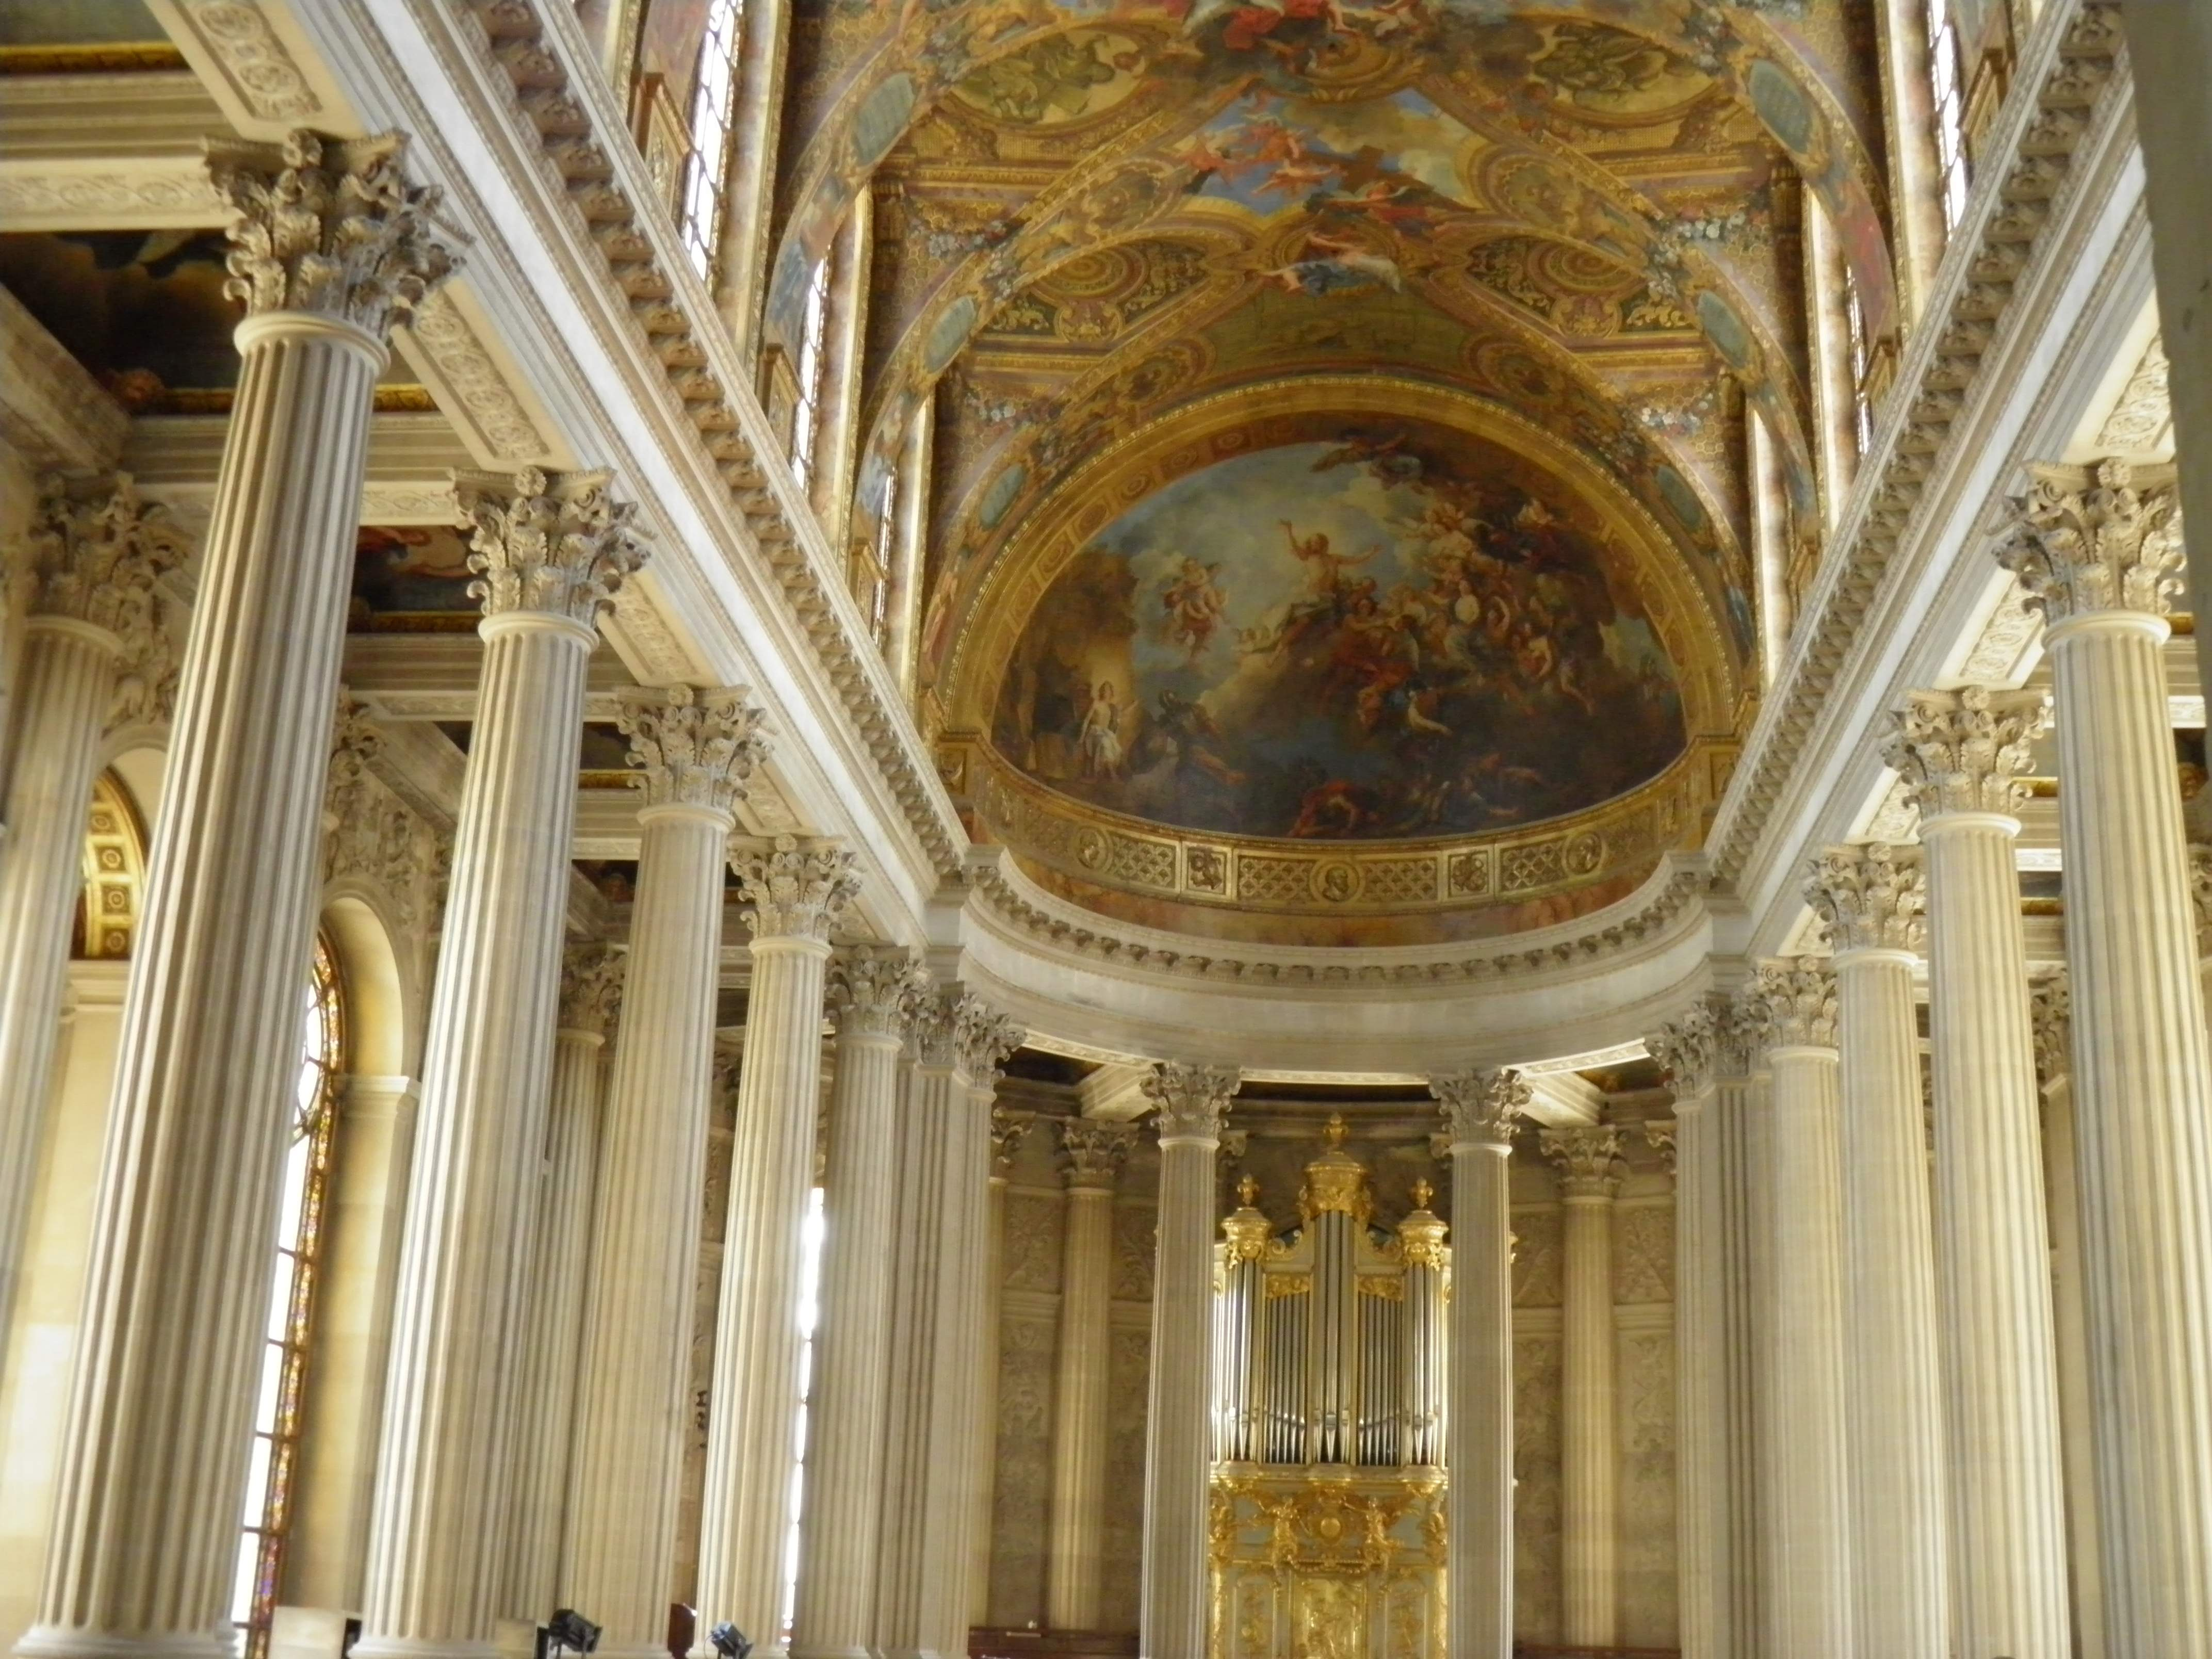 https://upload.wikimedia.org/wikipedia/commons/1/1b/Ch%C3%A2teau_de_Versailles_-_Chapelle_-_Int%C3%A9rieur%2C_%C3%A9tage_%281%29.jpg